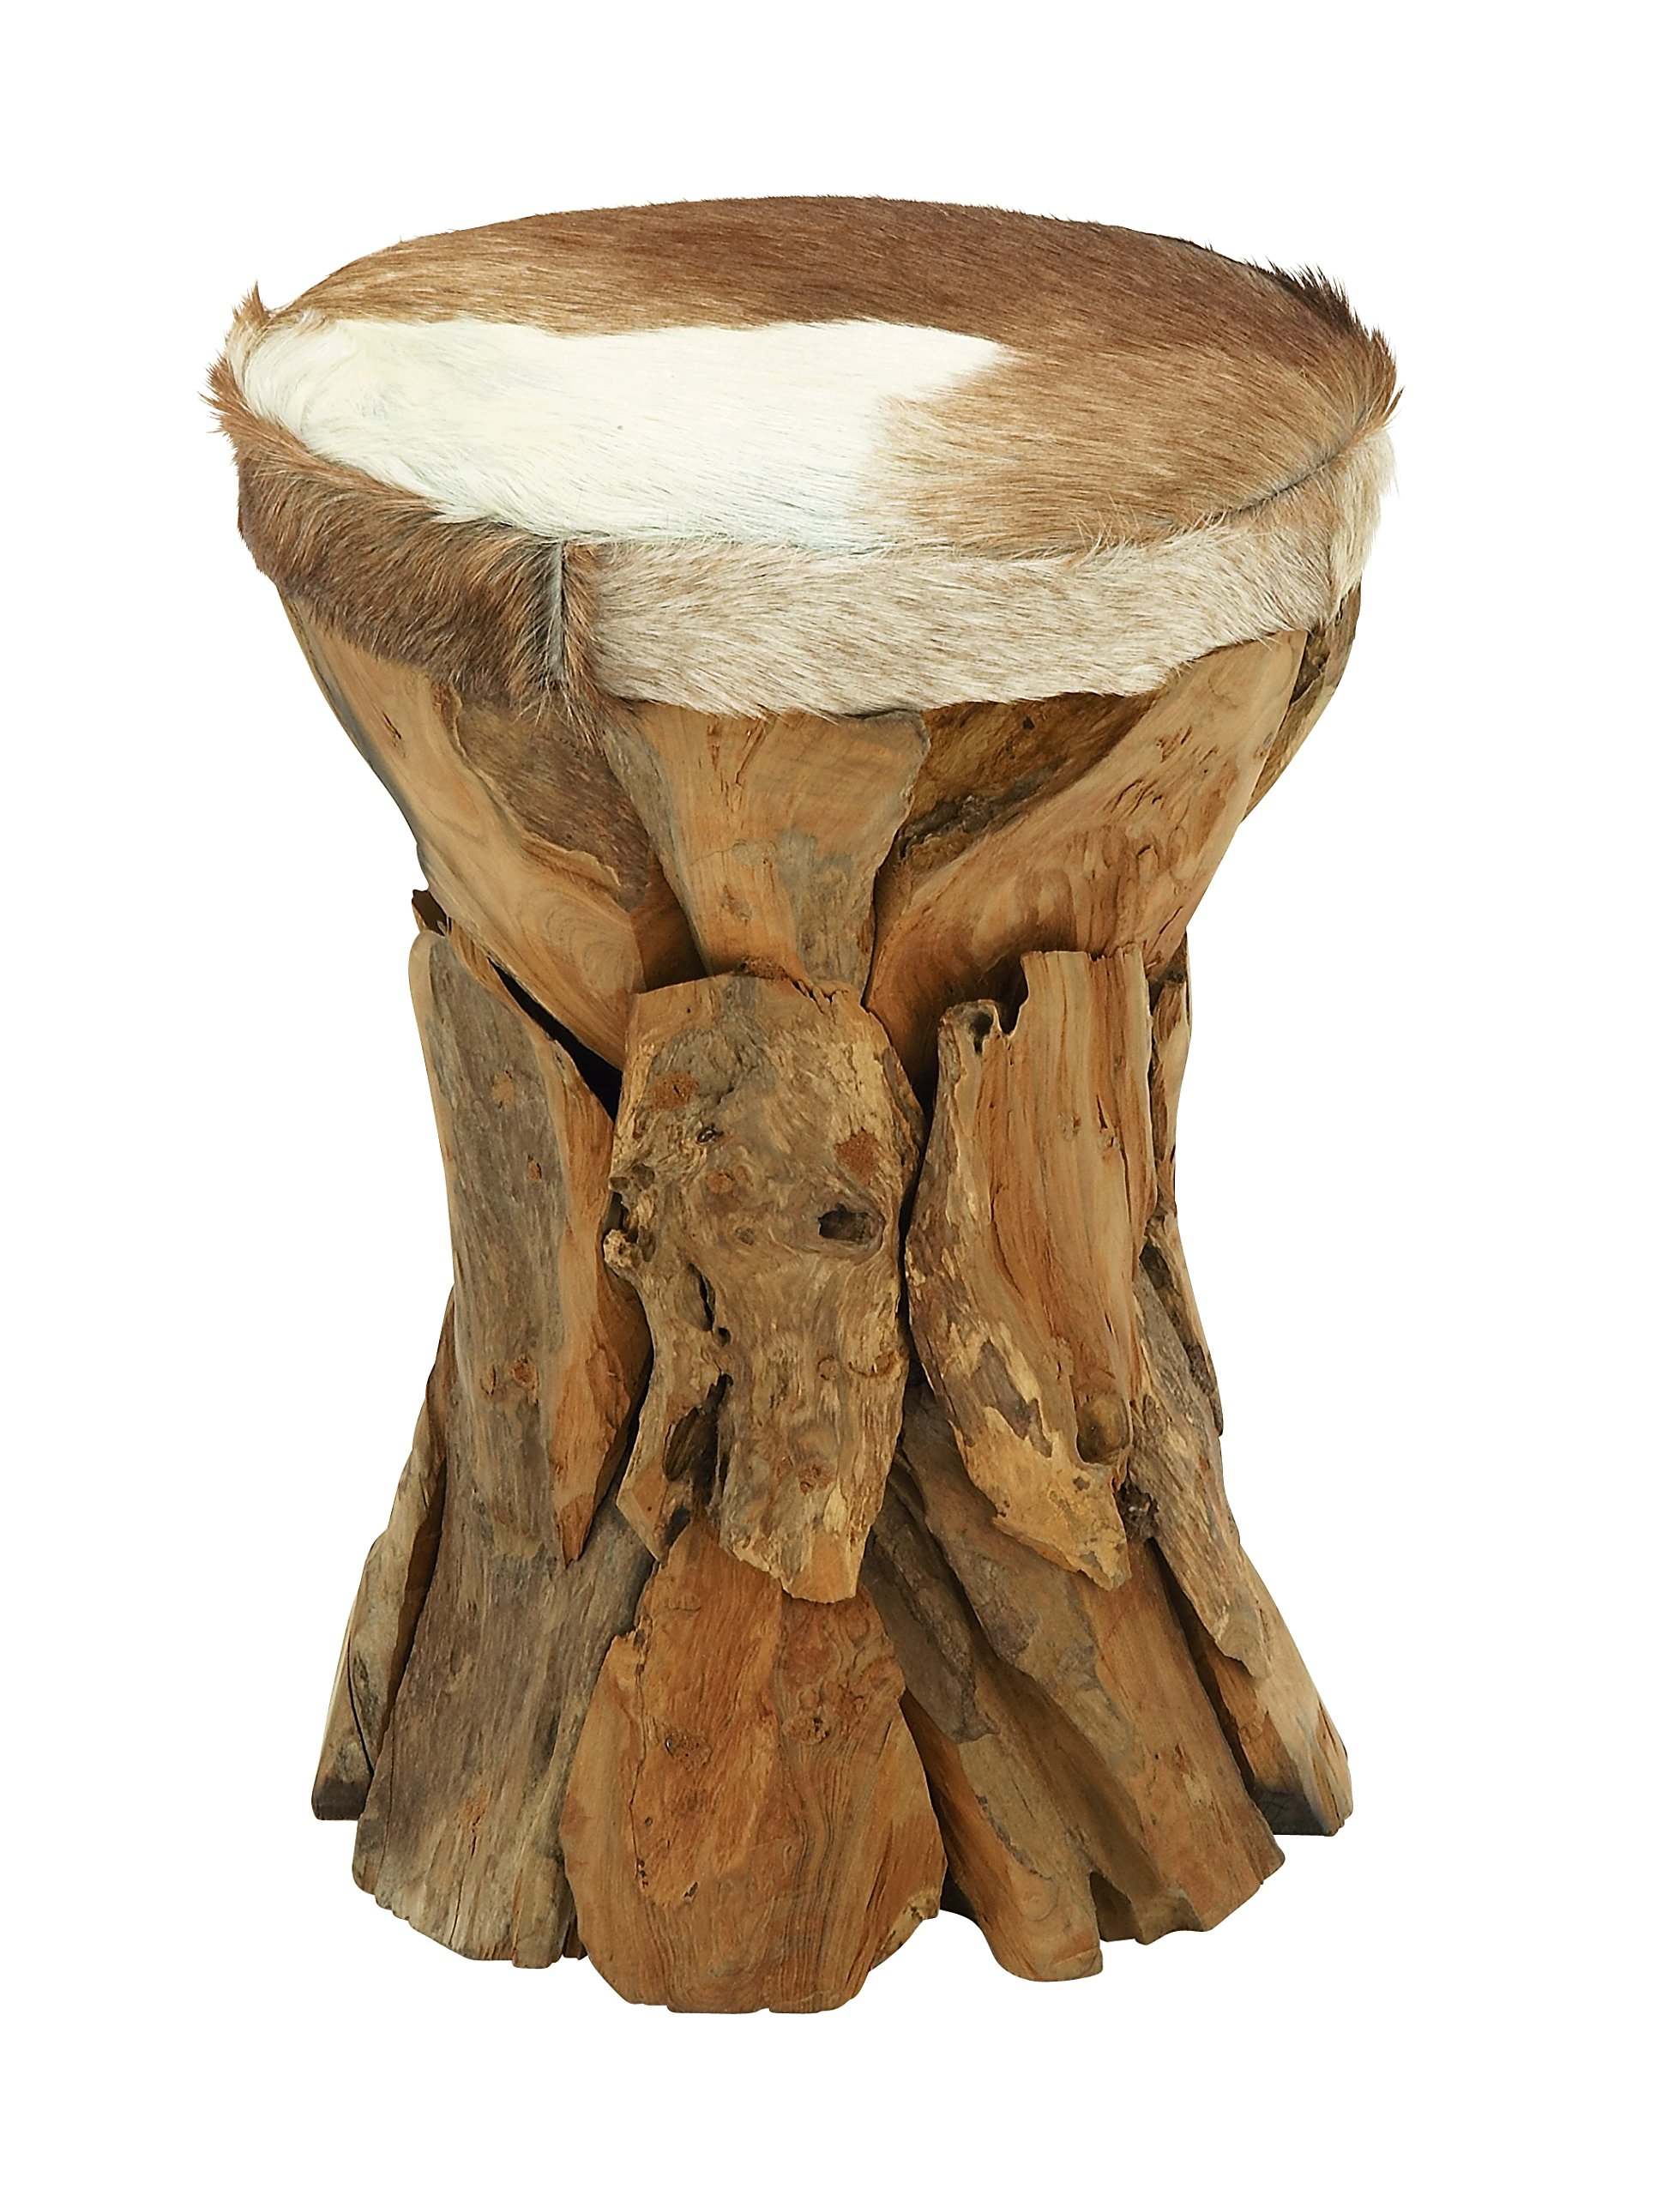 Deco 79 37644 Wood Hide Leather Round Stool, 14'' x 21''